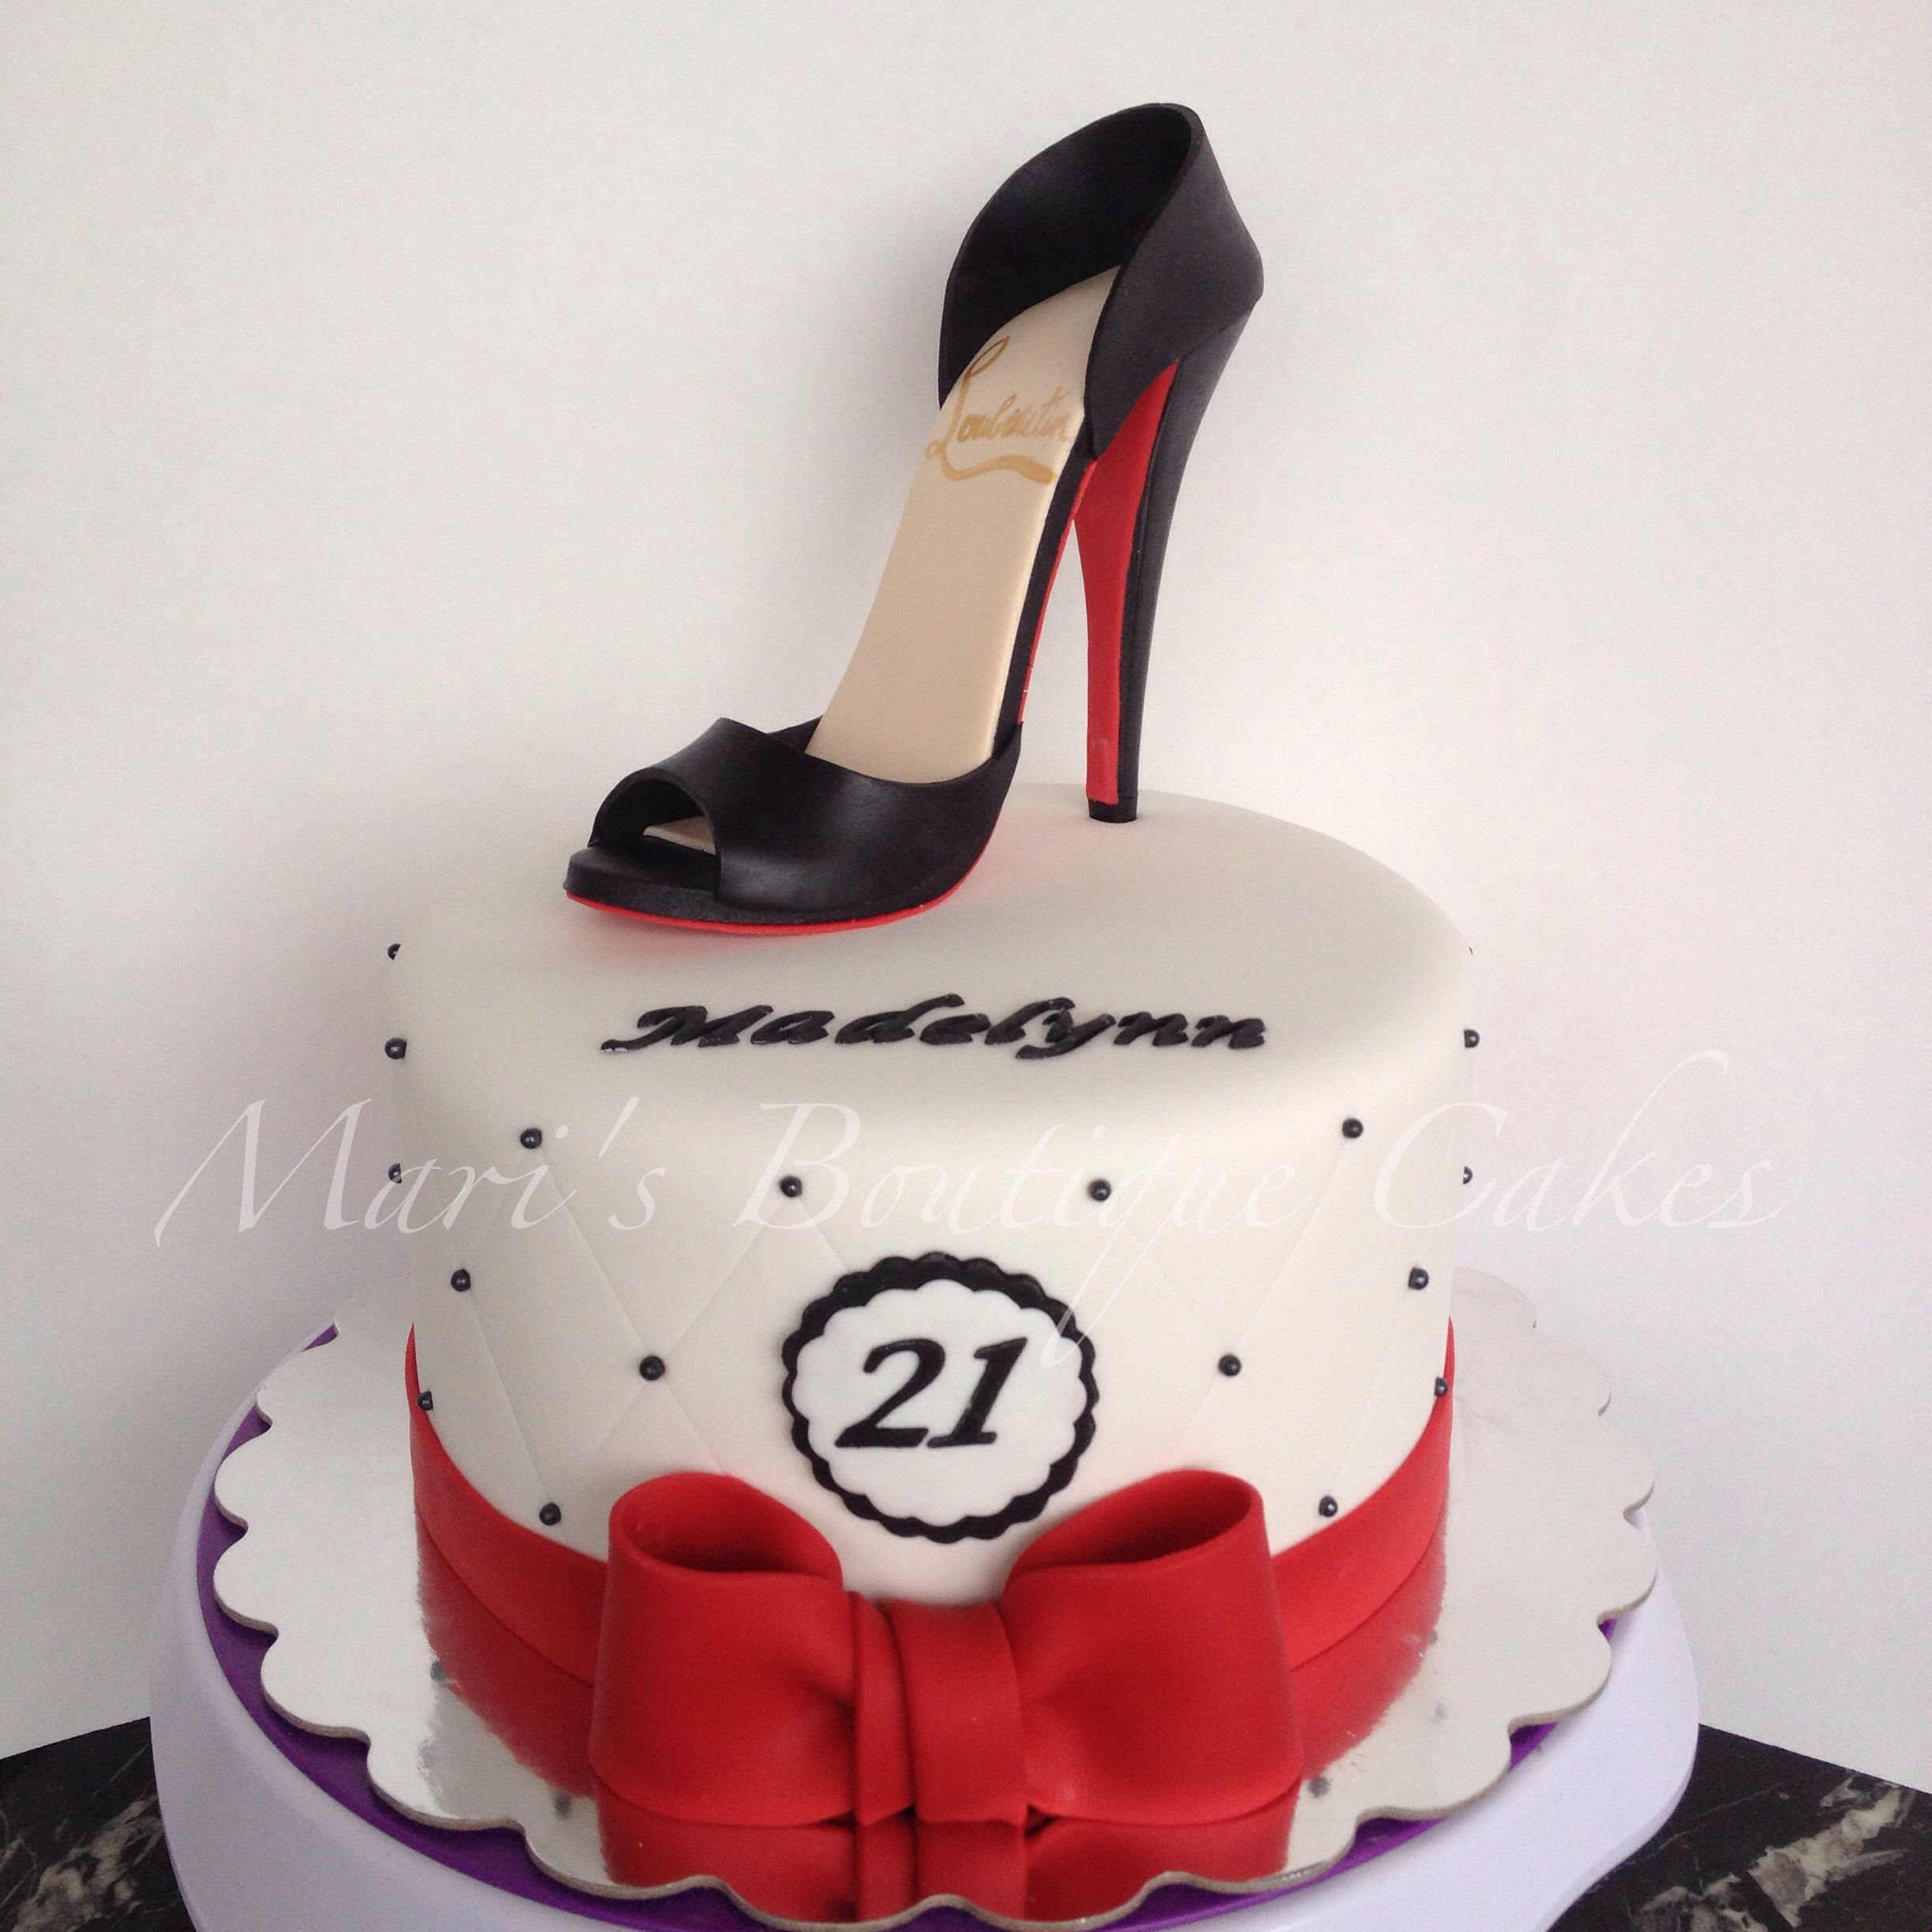 Pleasing 21St Birthday Cake With High Heel Shoe Topper By Maris Boutique Birthday Cards Printable Opercafe Filternl